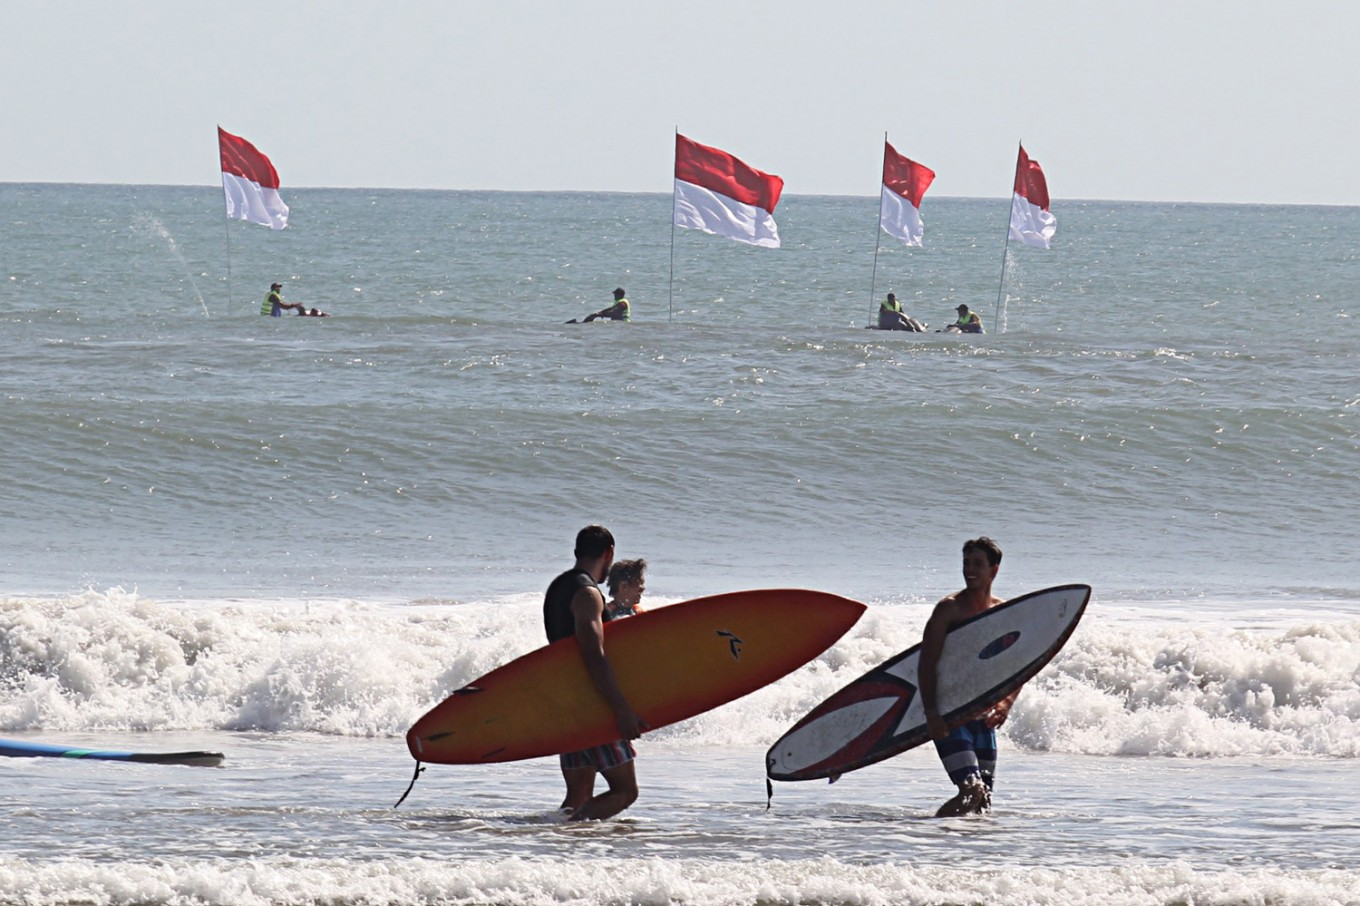 Giant surf board breaks Asia record